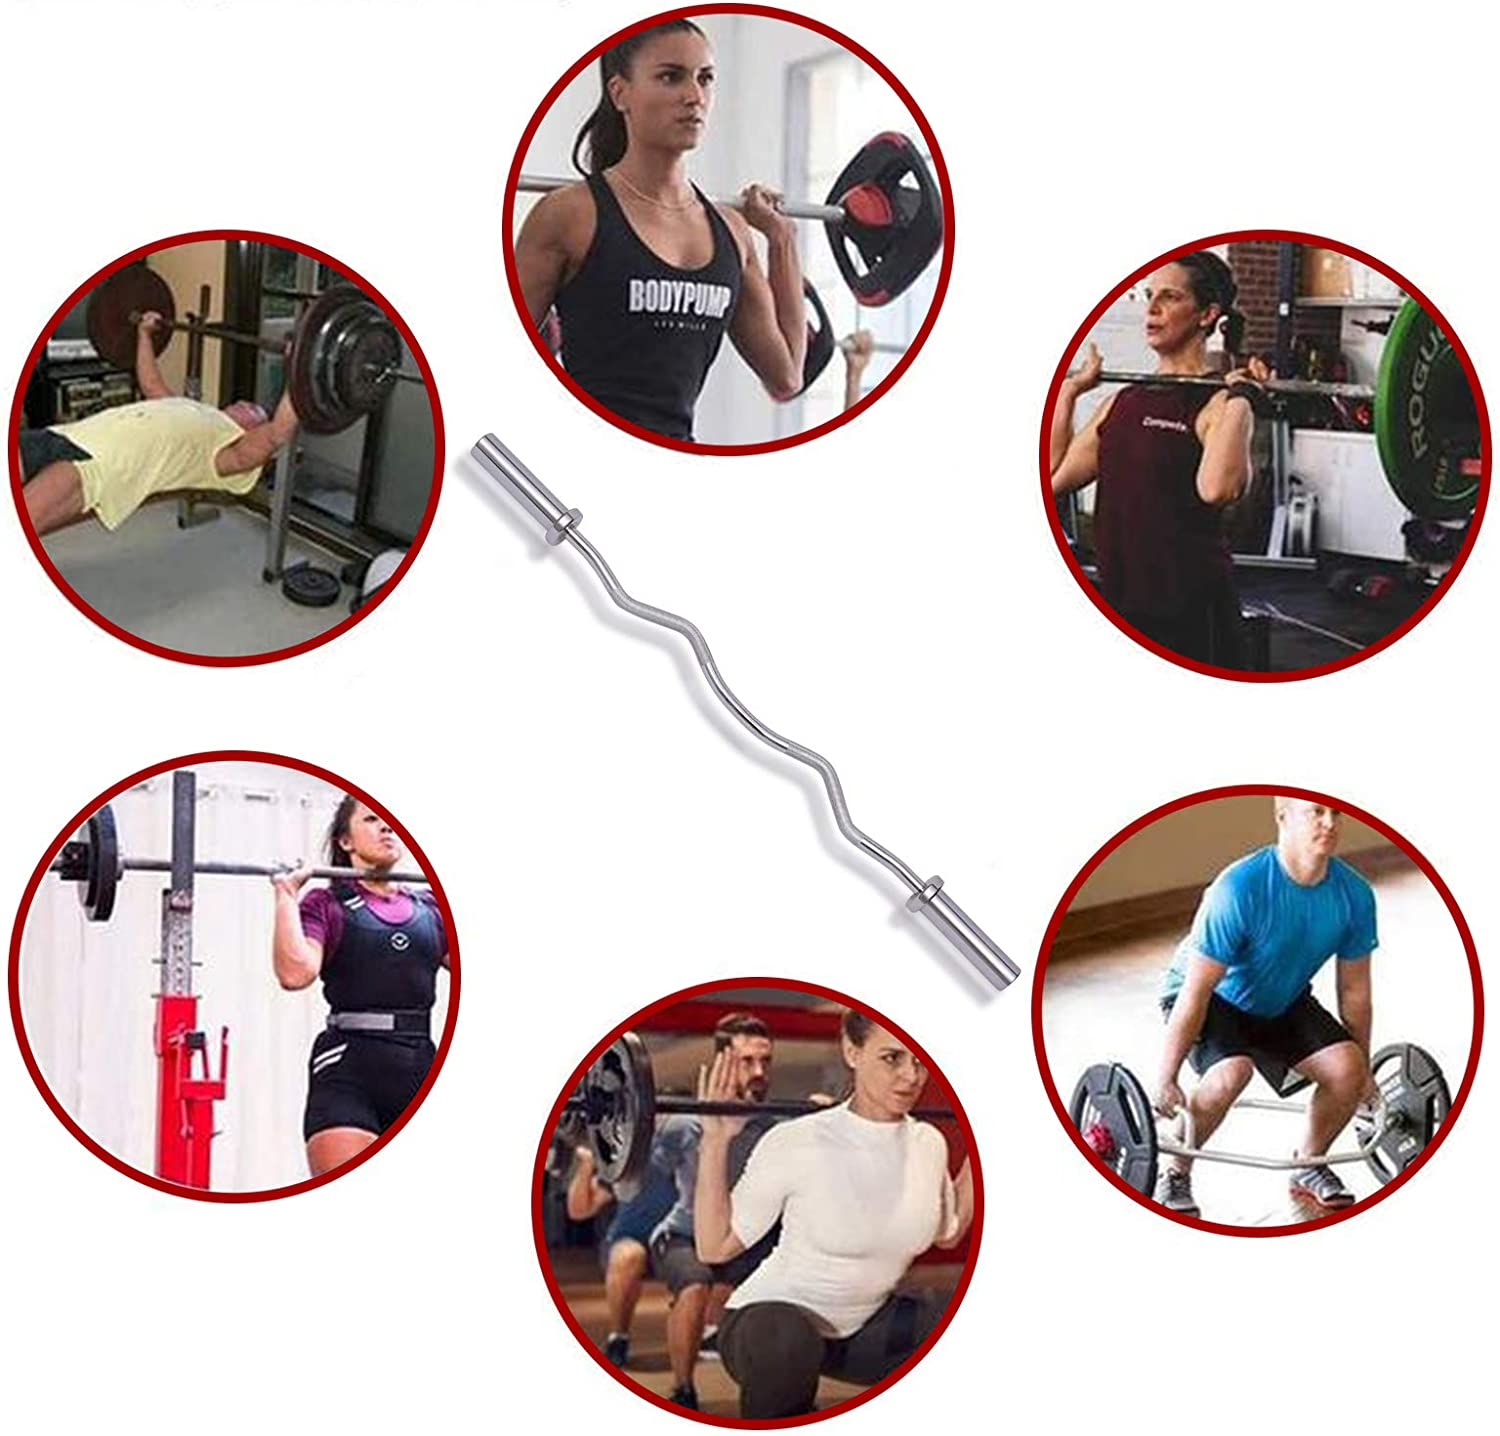 QUECAOCF 5//6//7 FT Olympic Barbell Bar Weight Bar Solid Iron Weighted Workout Barbell Weight Straight Weightlifting Technique Bar for Home Fitness Exercise Equipment